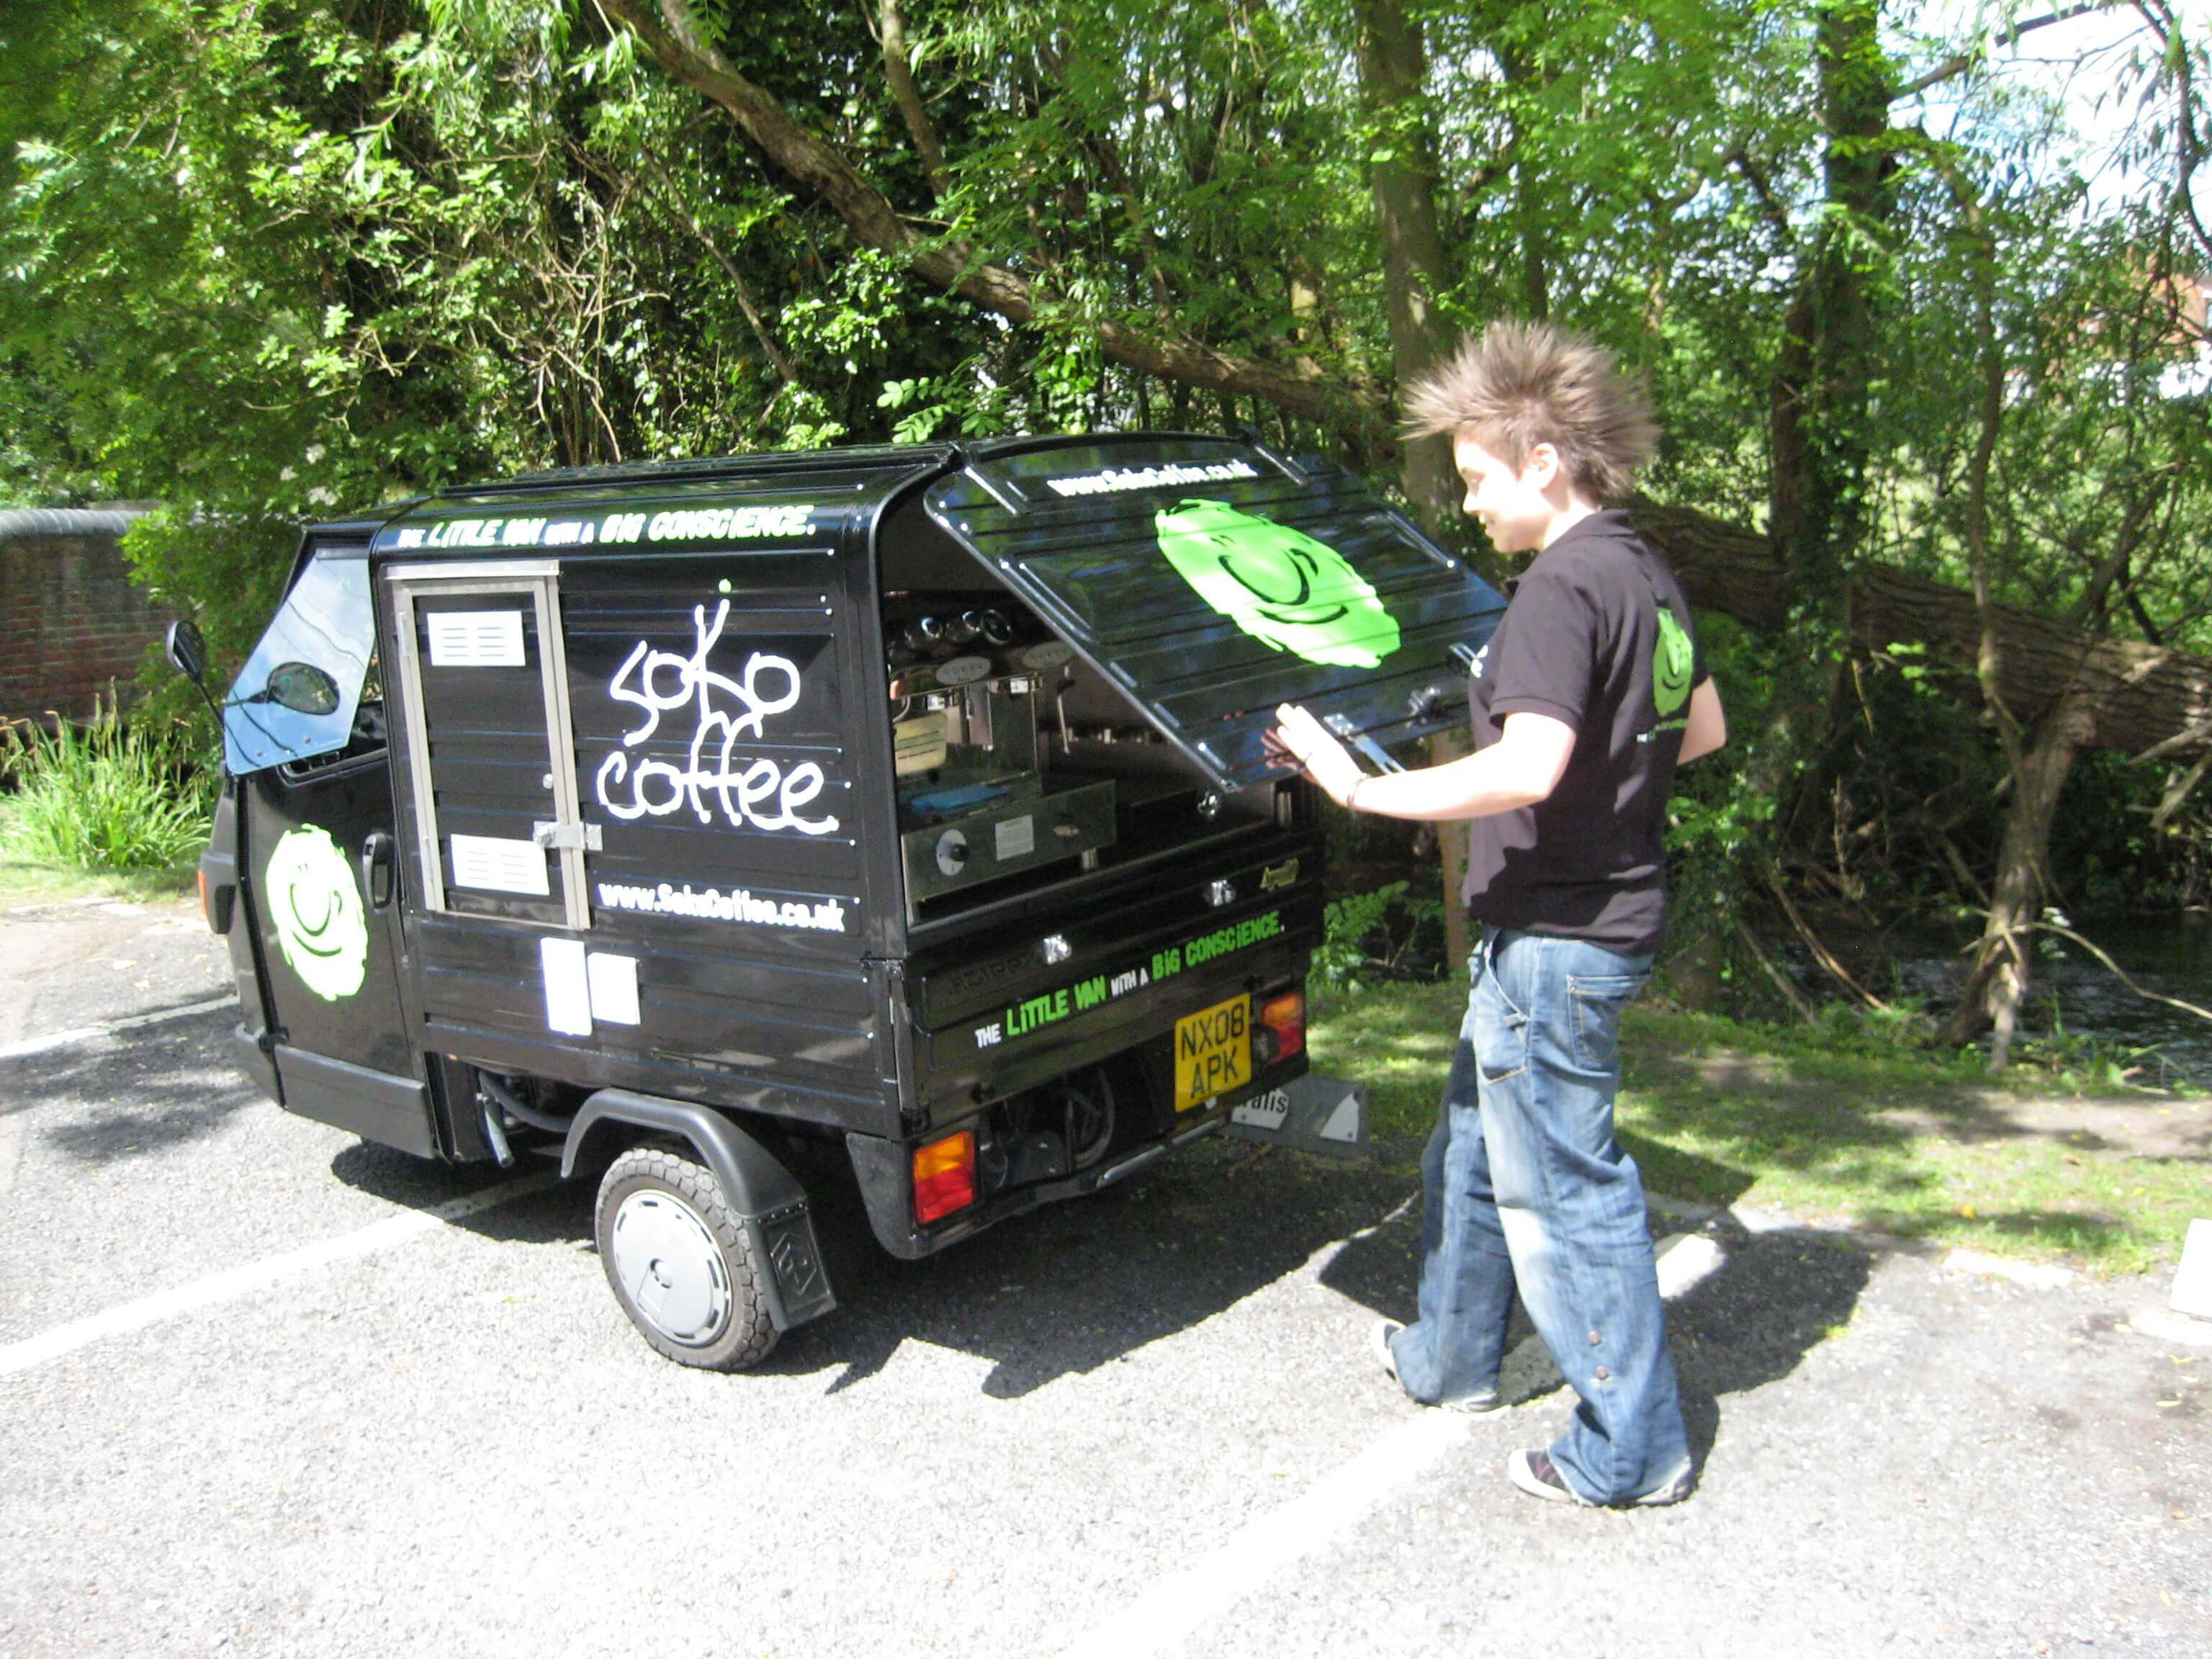 Ape 50 - Coffee Cart